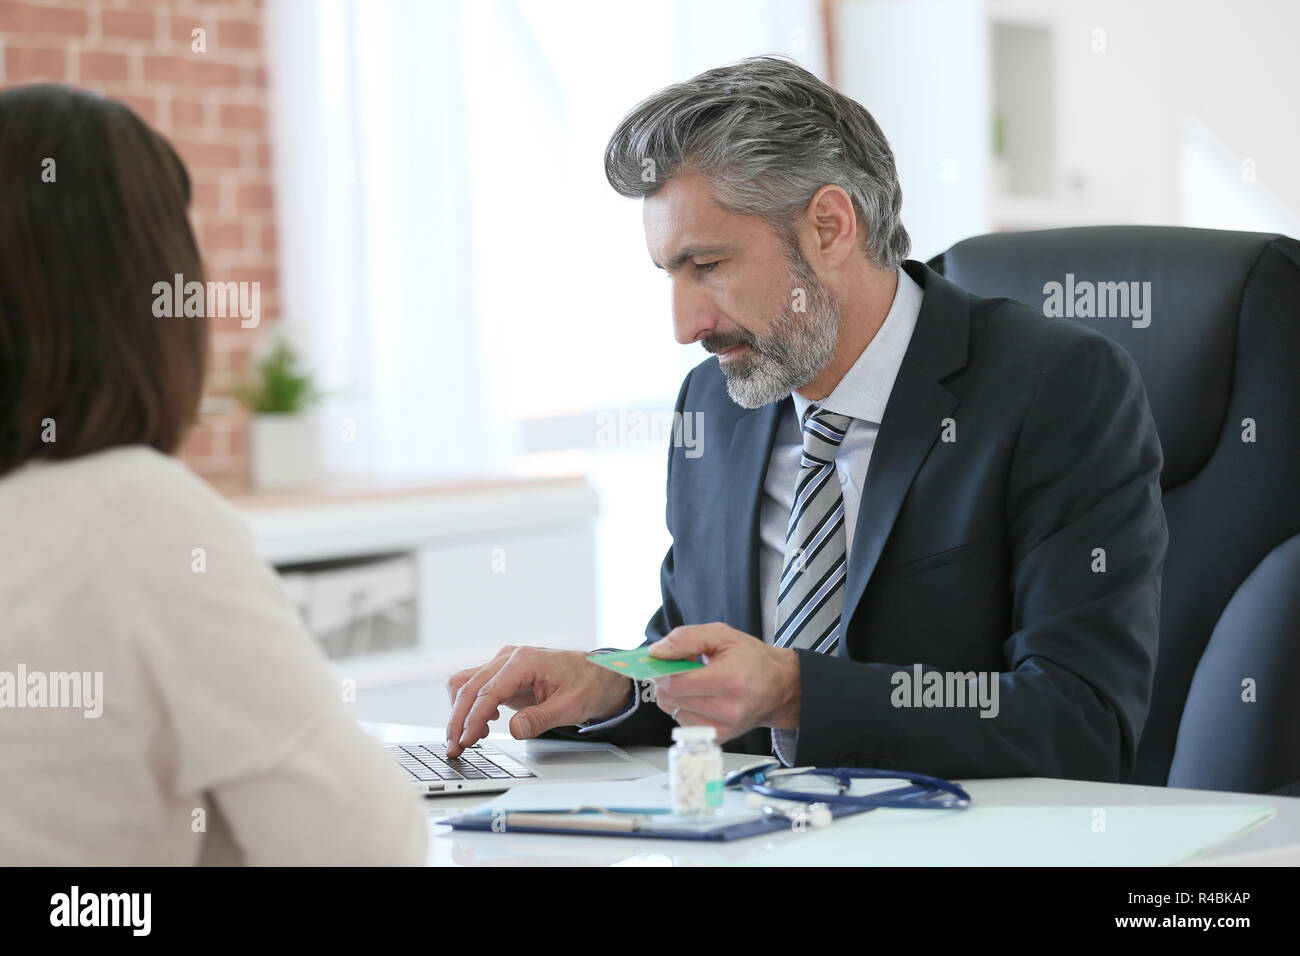 Patient giving social security card to doctor - Stock Image